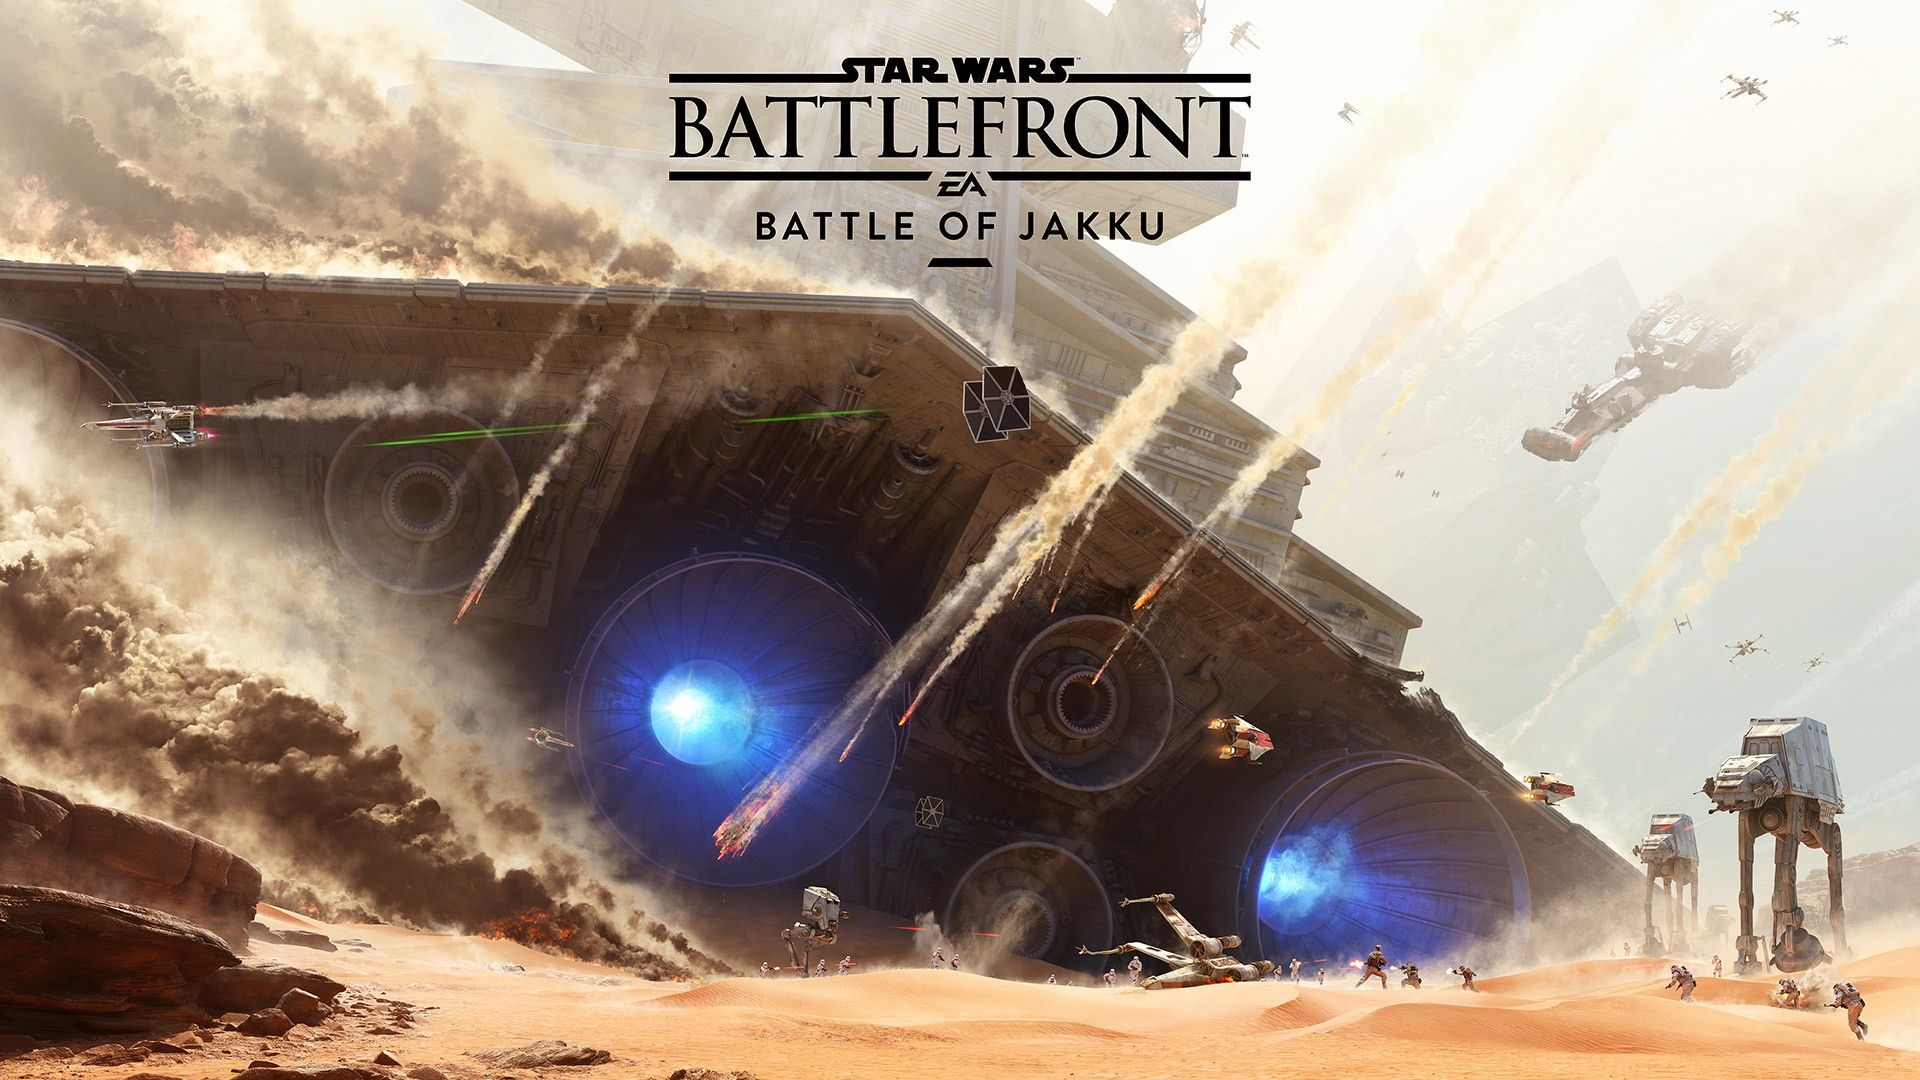 Star Wars Battlefront Battle Of Jakku Wallpapers Free Computer